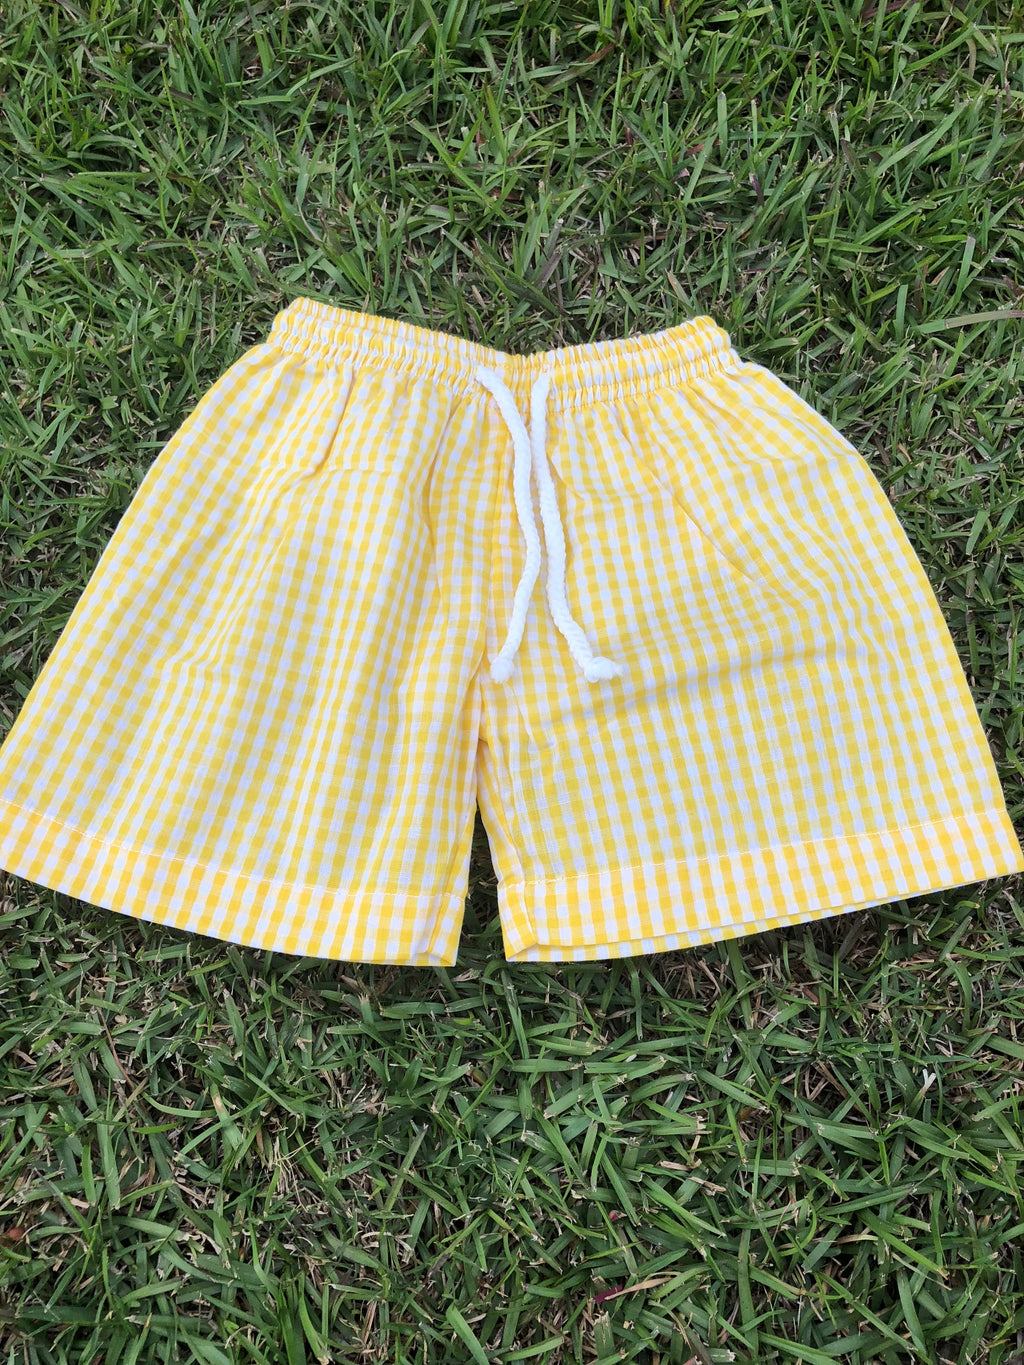 Yellow Gingham Trunk Swim Suit